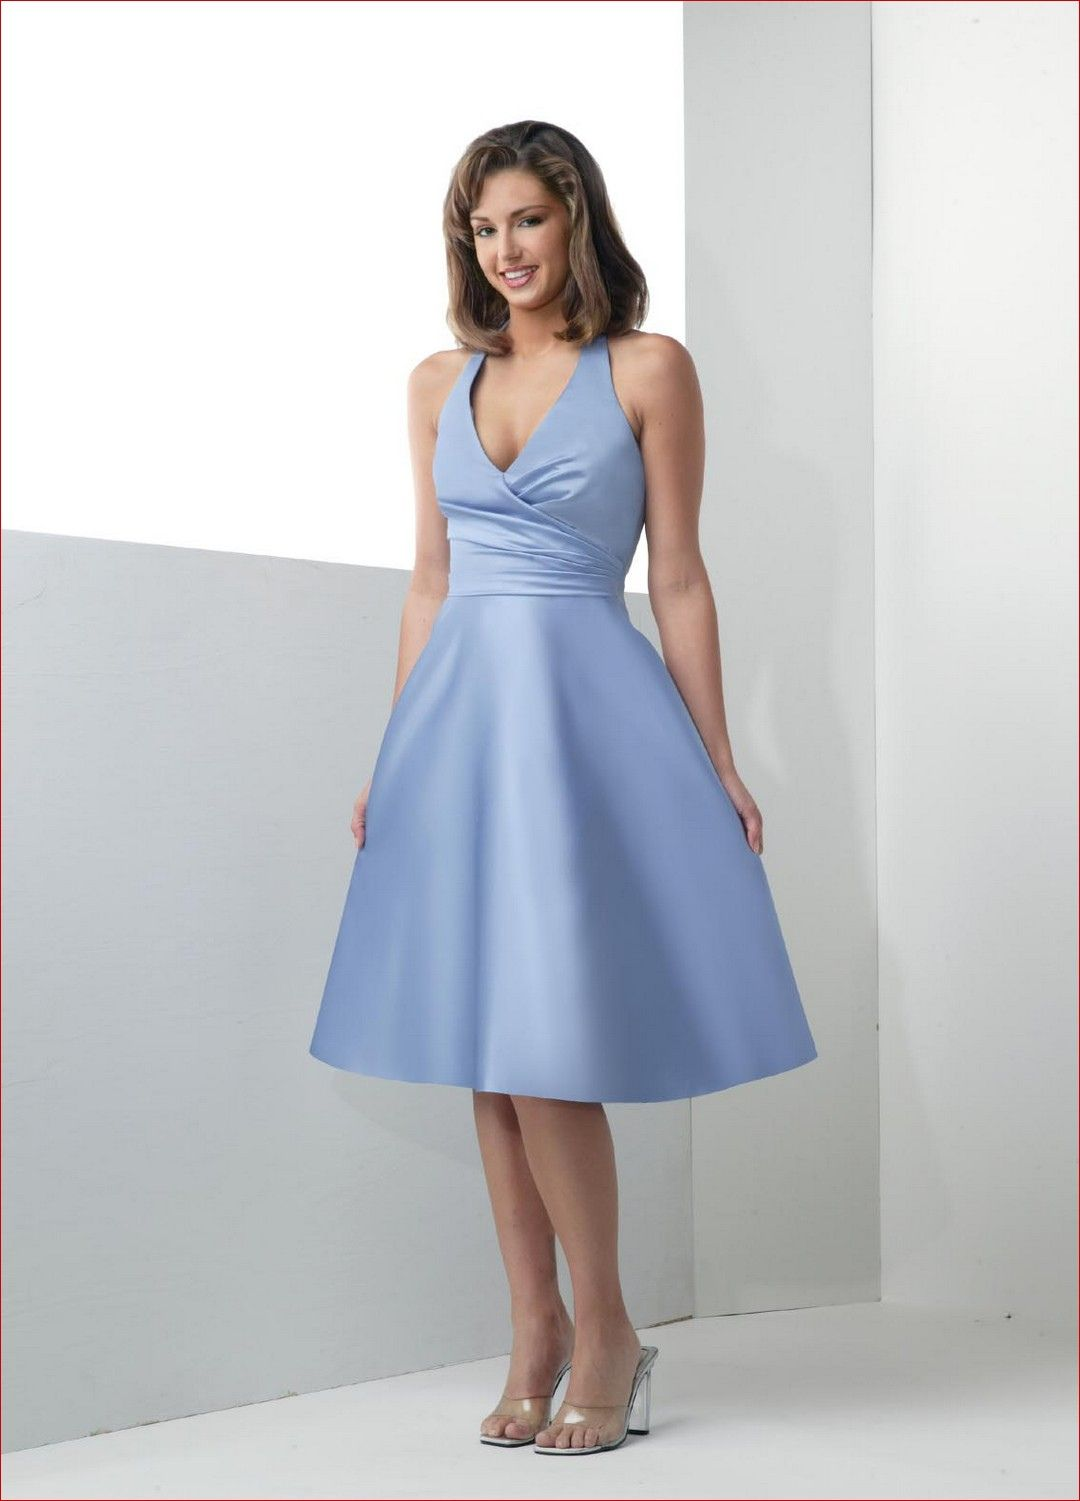 20+ Dresses to Wear to A Wedding Reception - Wedding Dresses for ...